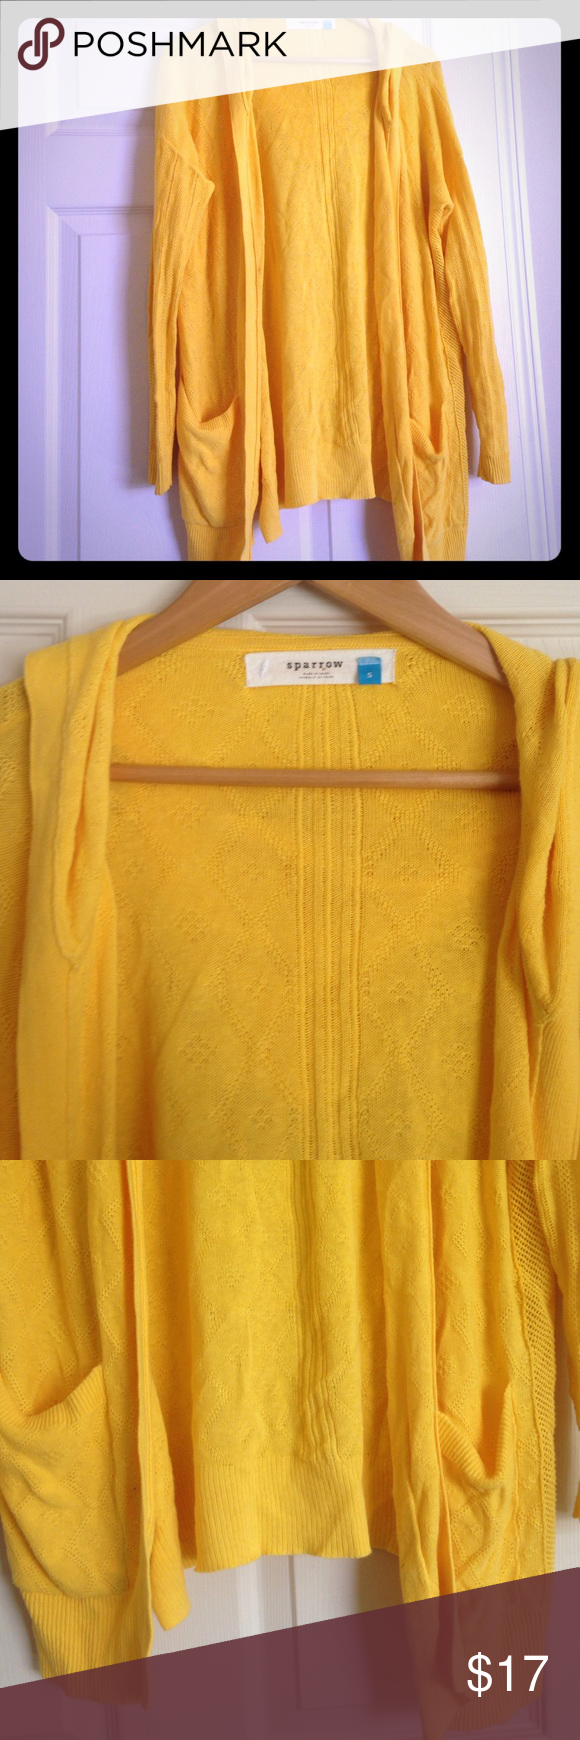 Sparrow anthropolgie yellow knit cardigan sweater